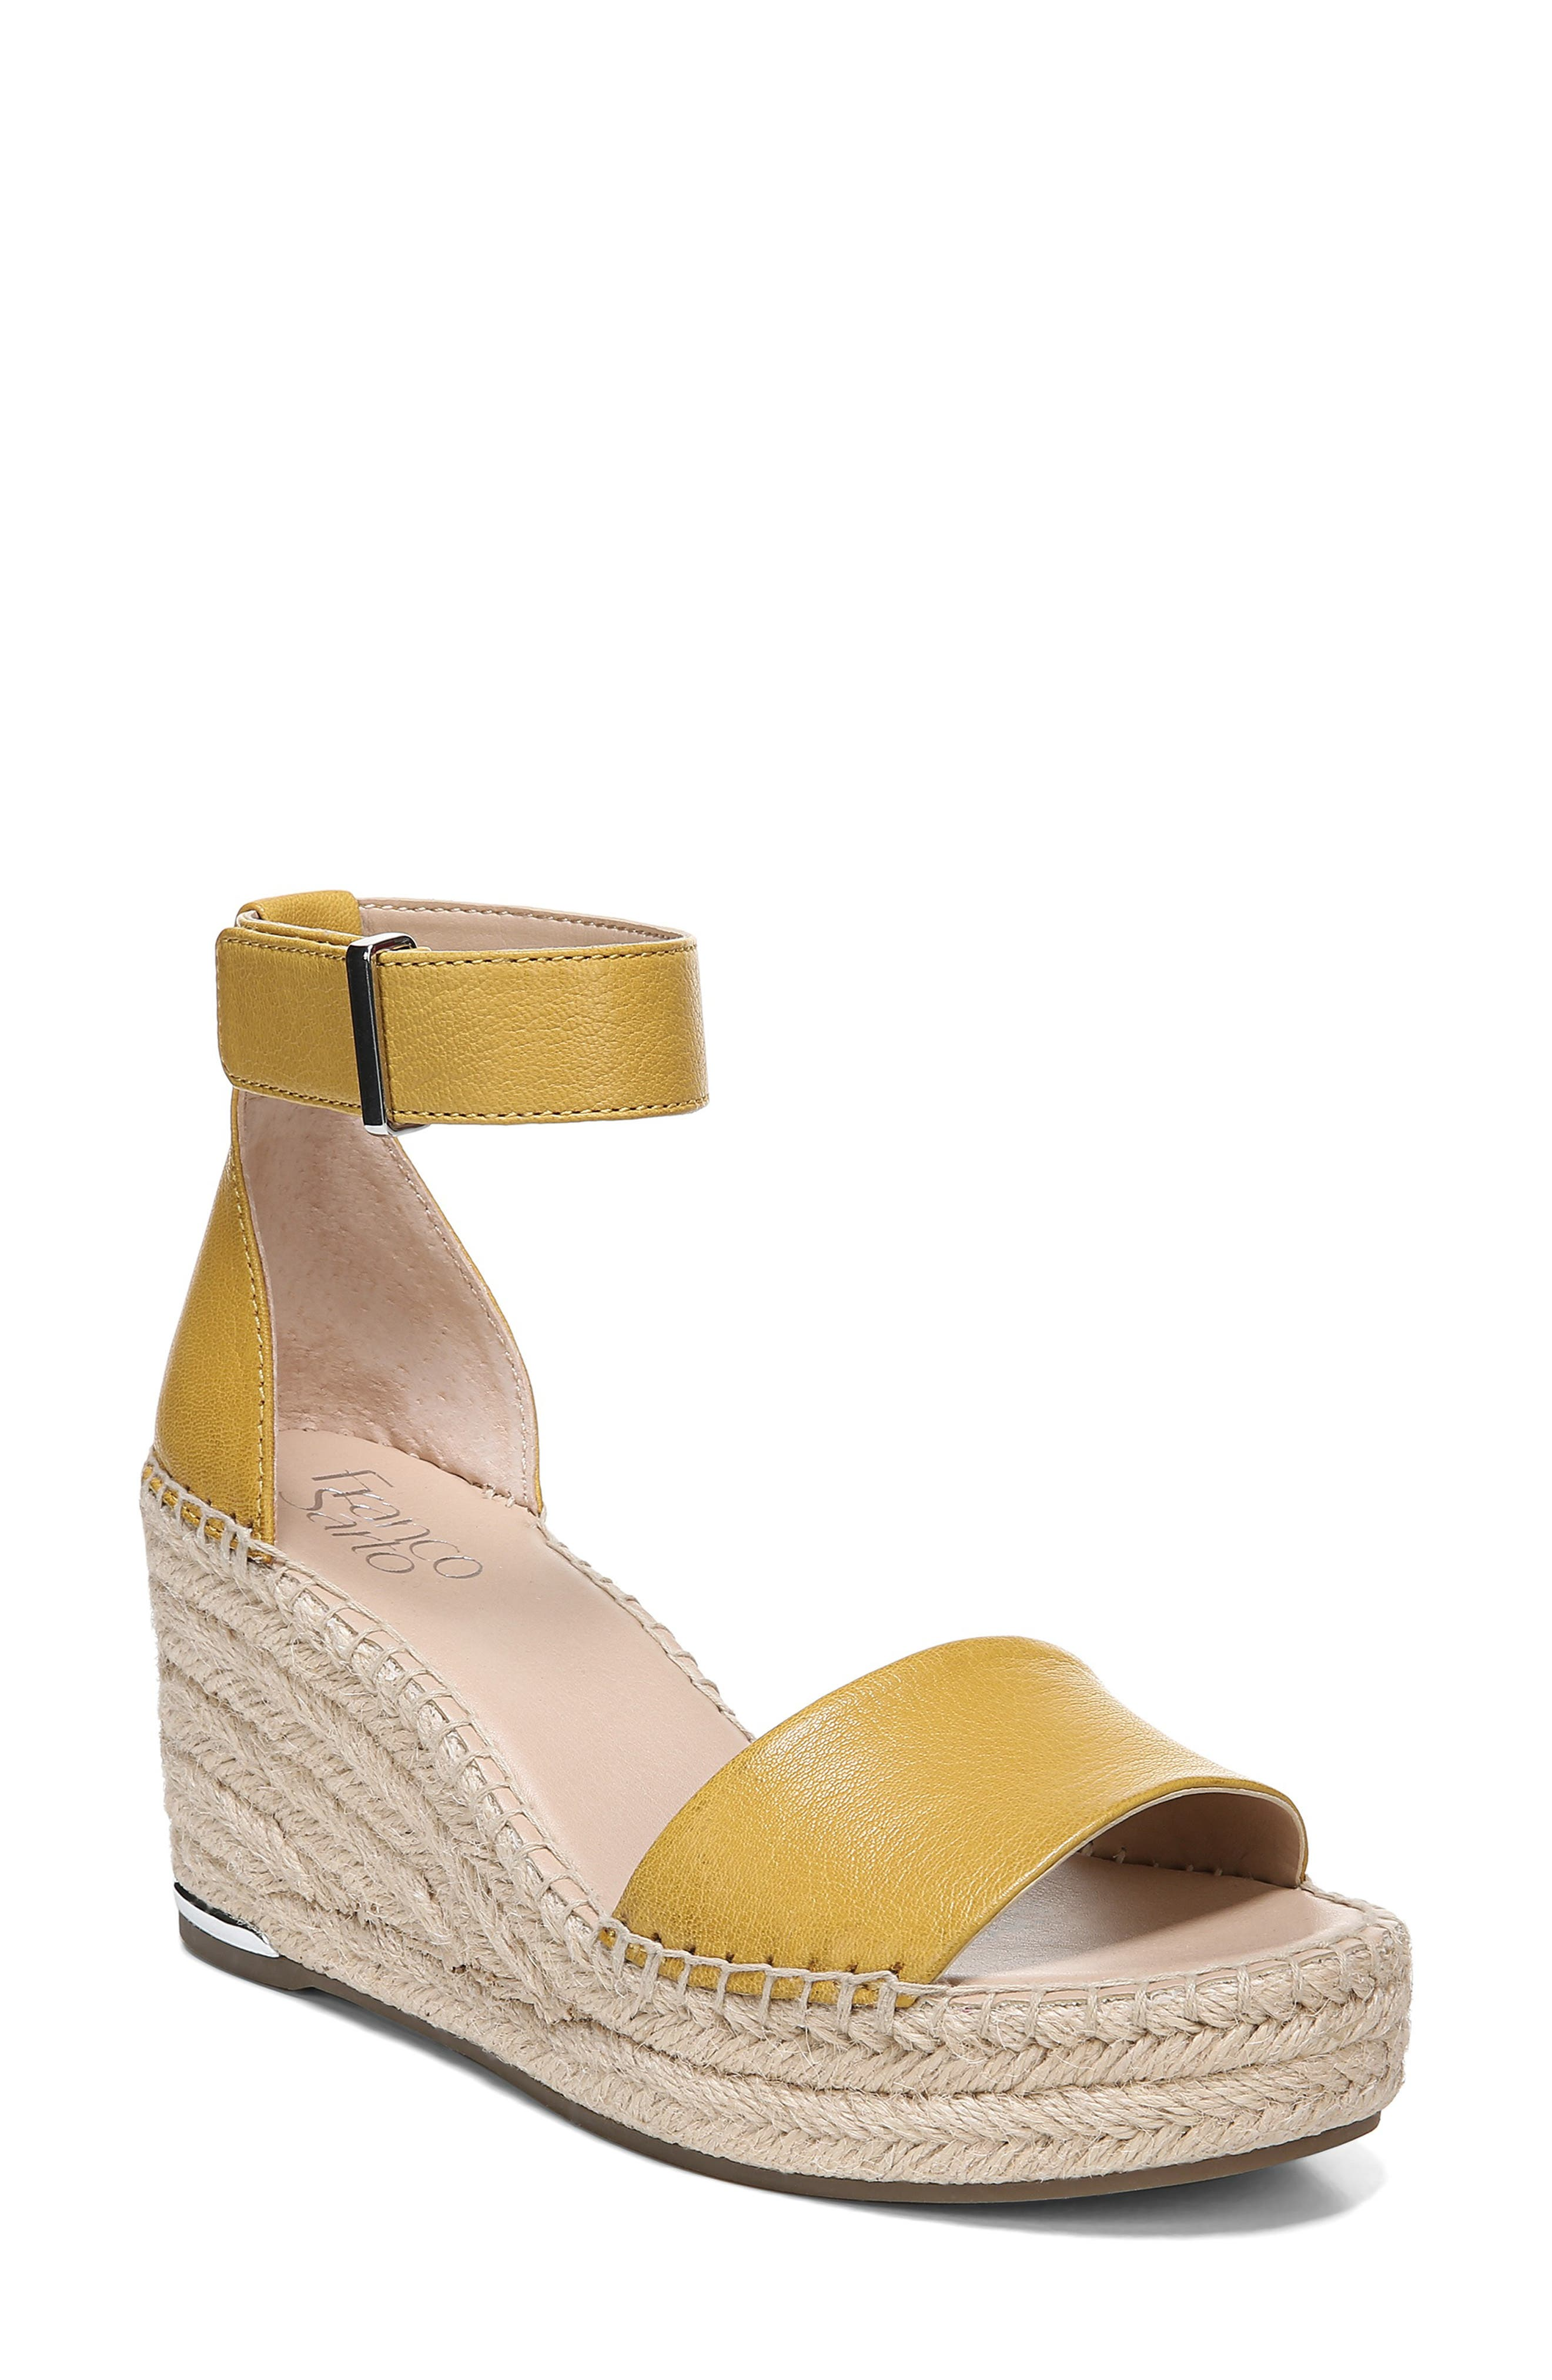 a117d1549501 Franco Sarto Clemens Espadrille Wedge Sandal